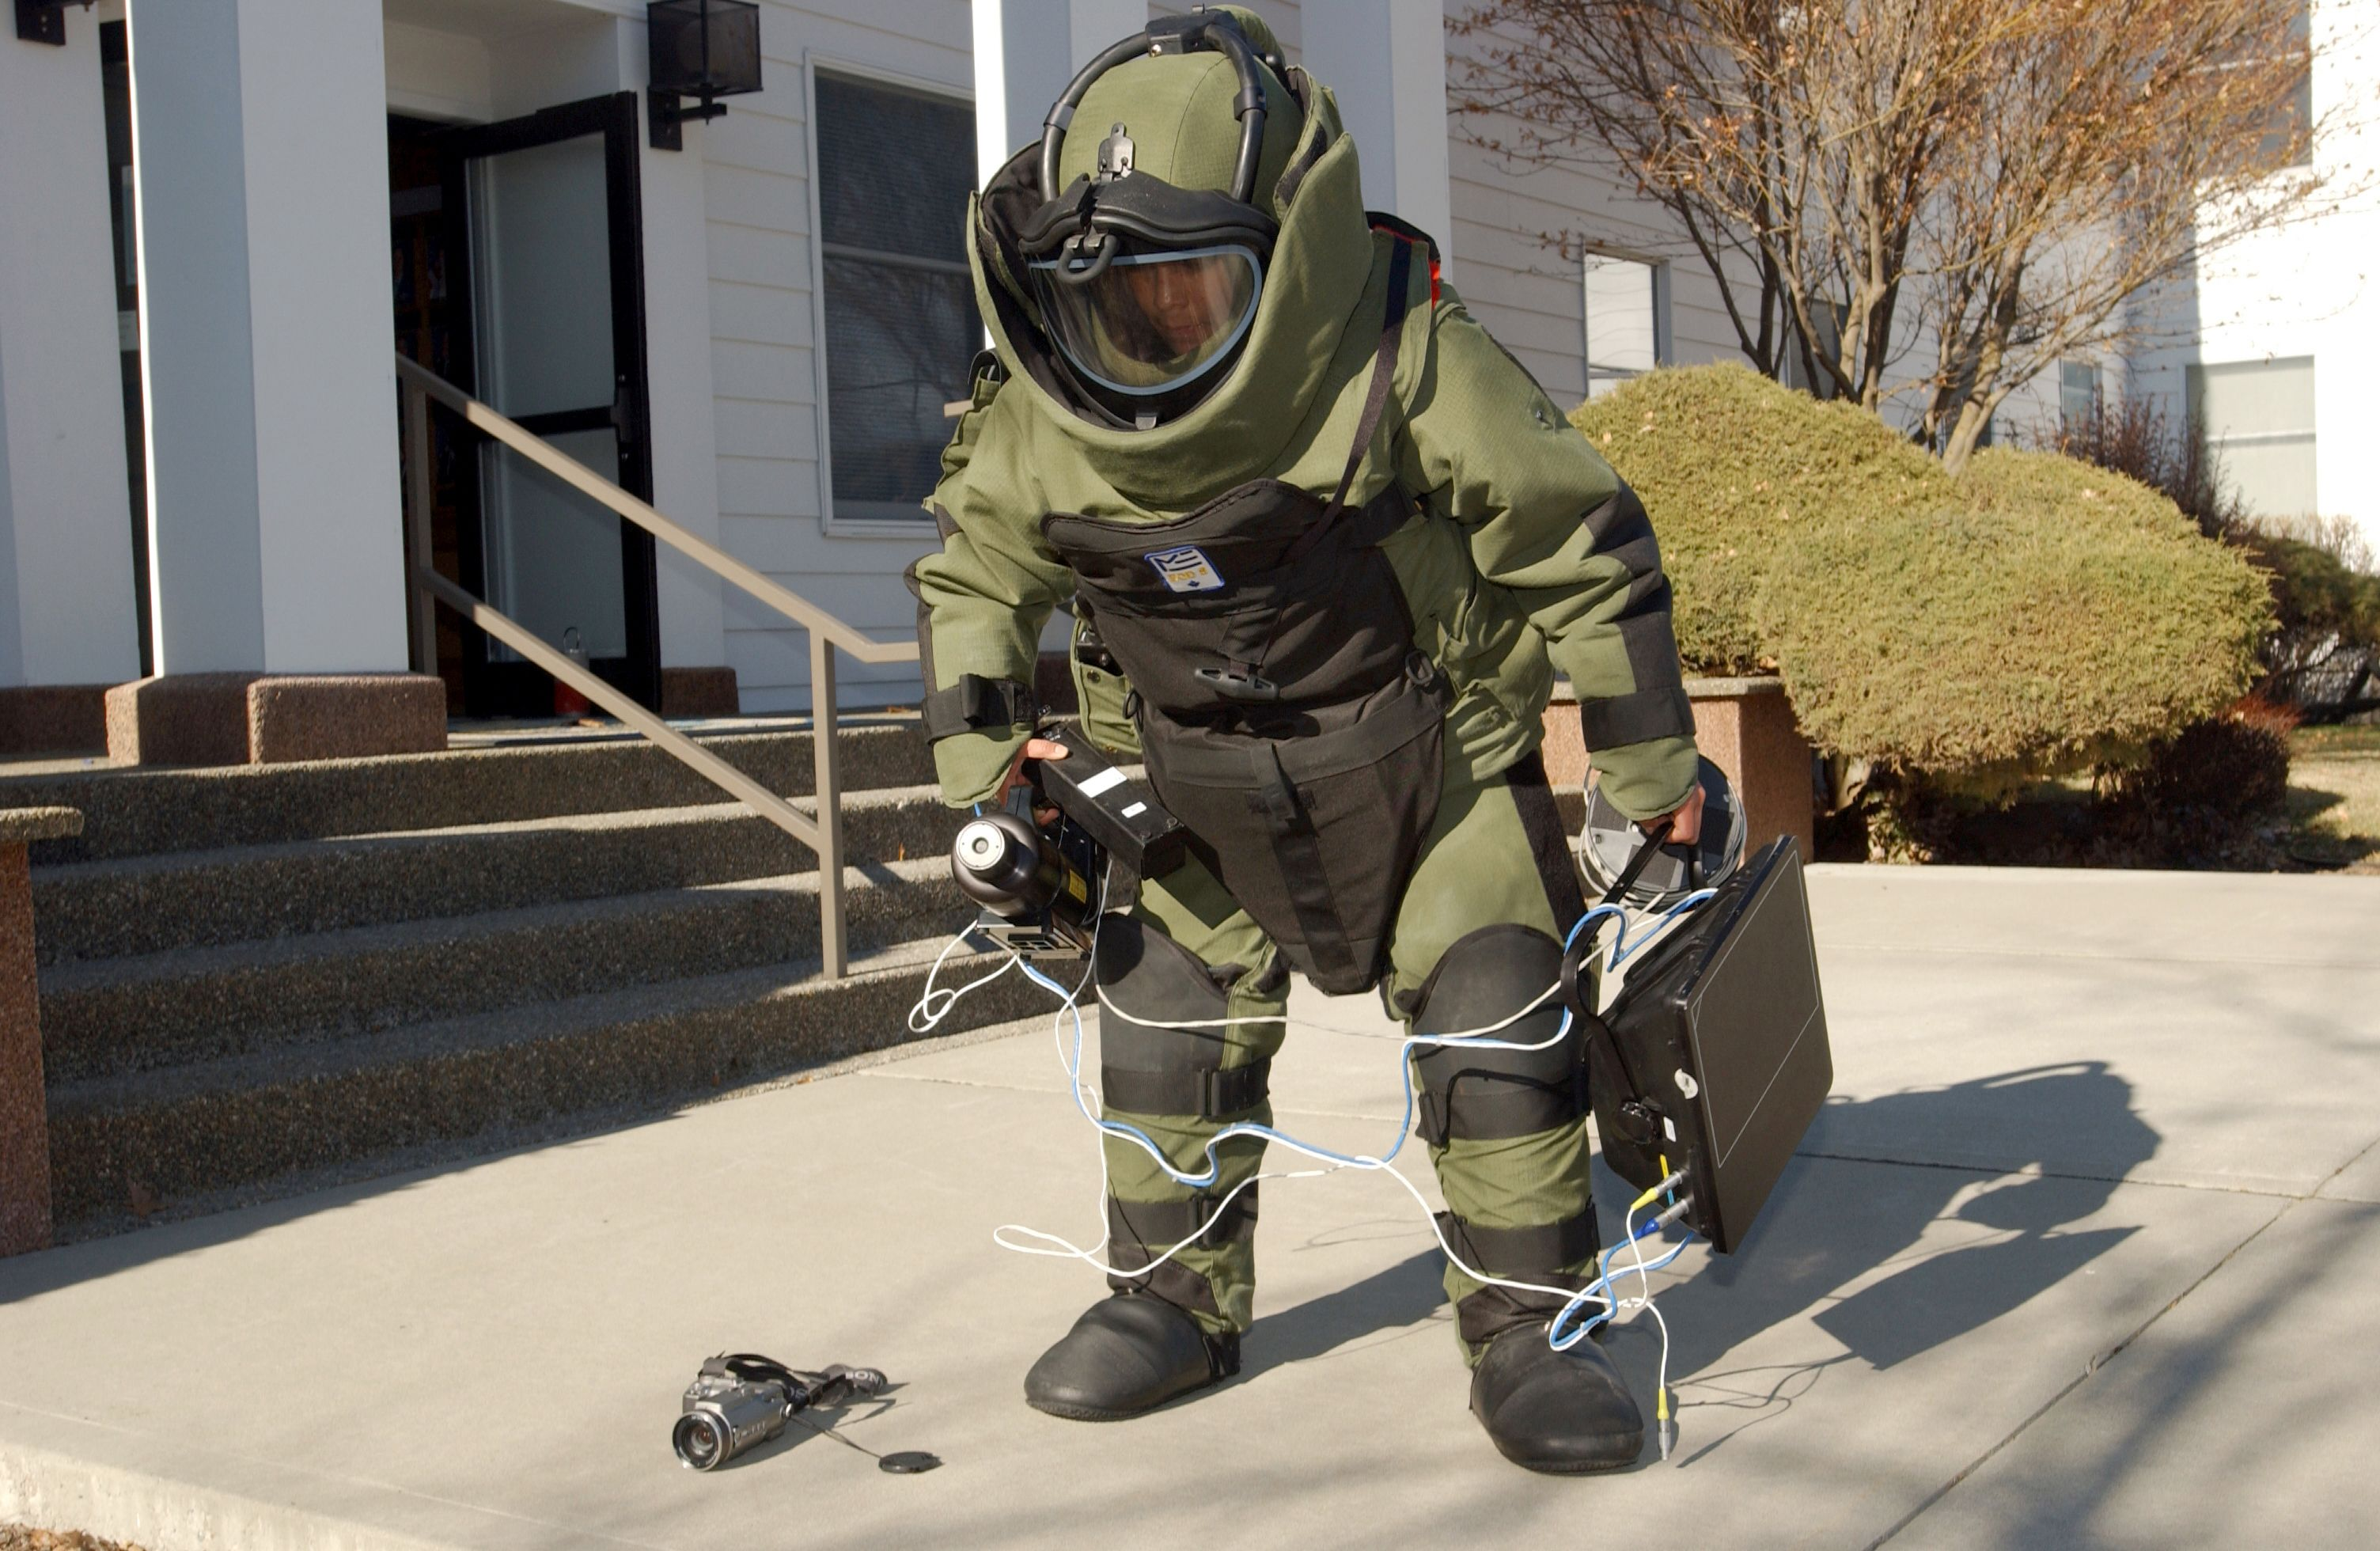 Global Explosive Ordnance Disposal Eod Equipment Market Is Estimated To Reach 8 8 Billion By 2024 Growing At A Ca Opportunity Analysis Marketing Disposable